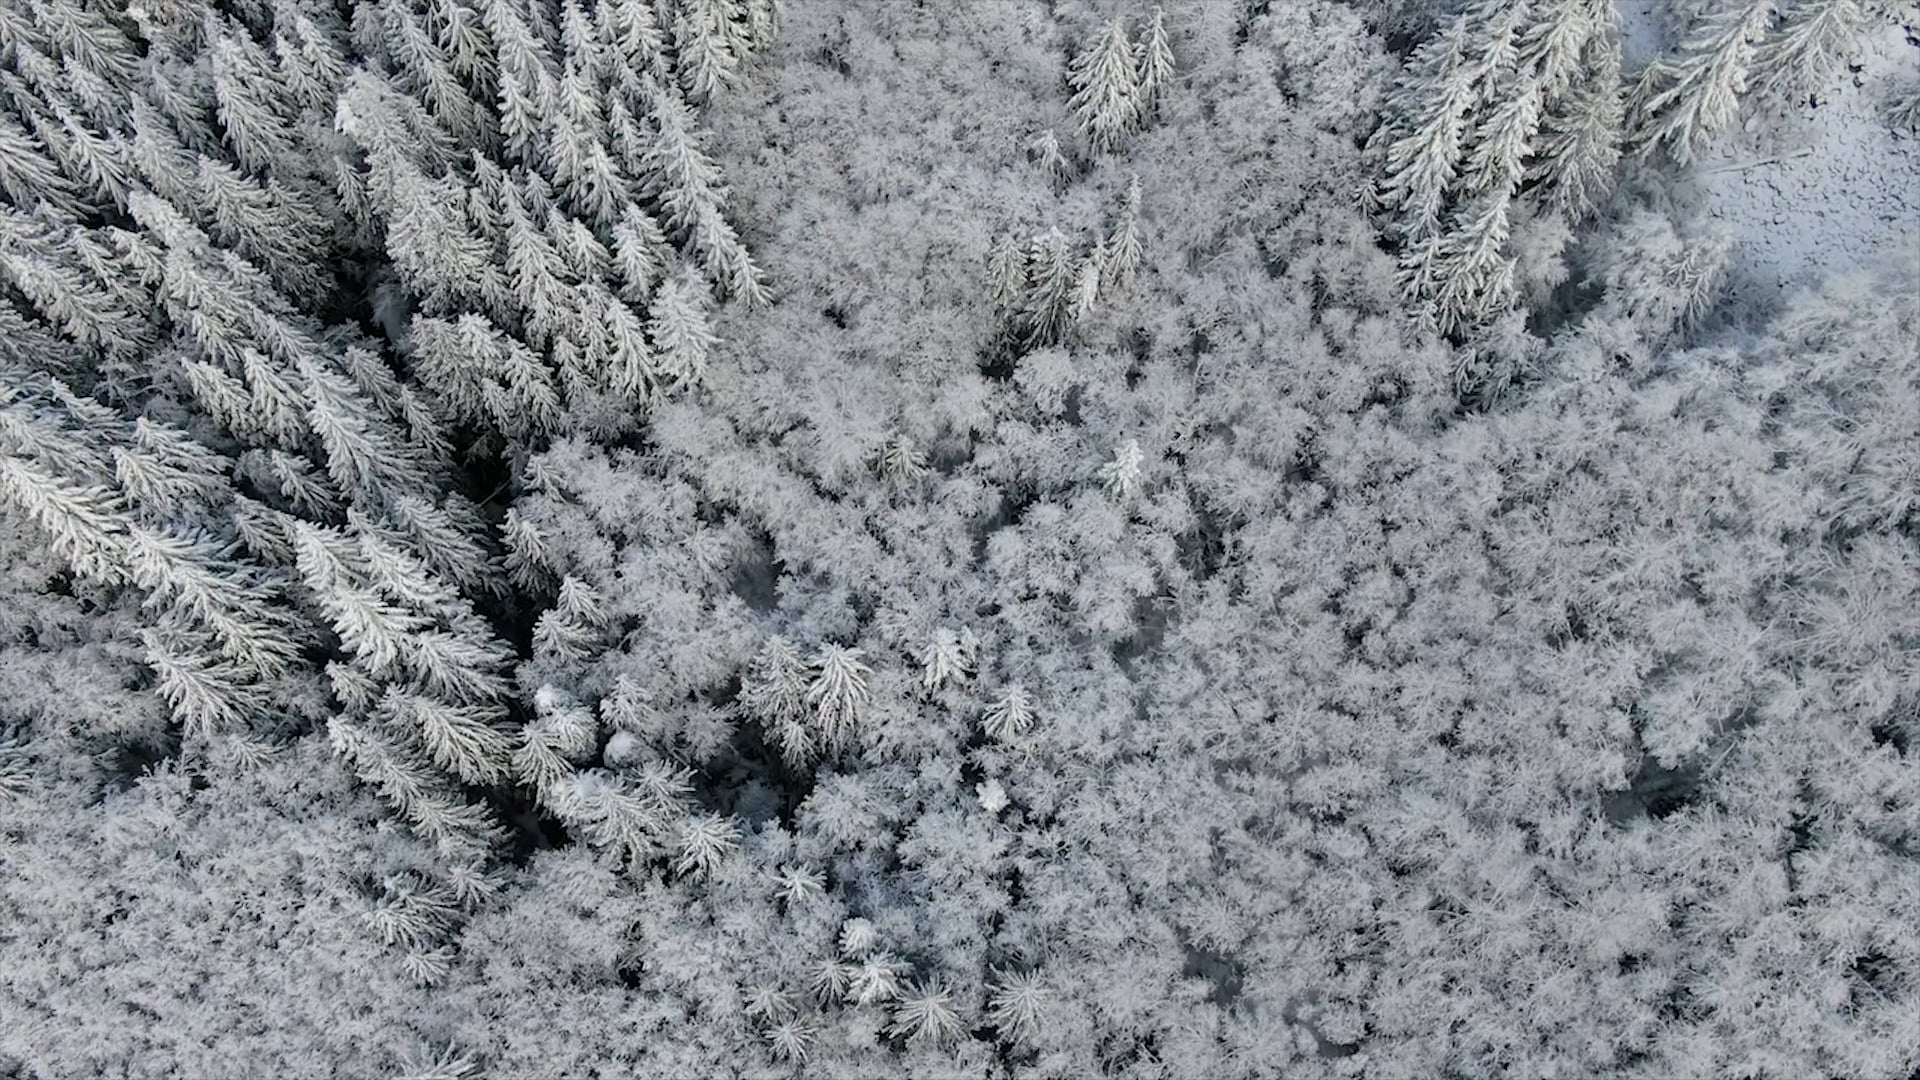 Mt. Hood wintery fly-over by kevin kubota